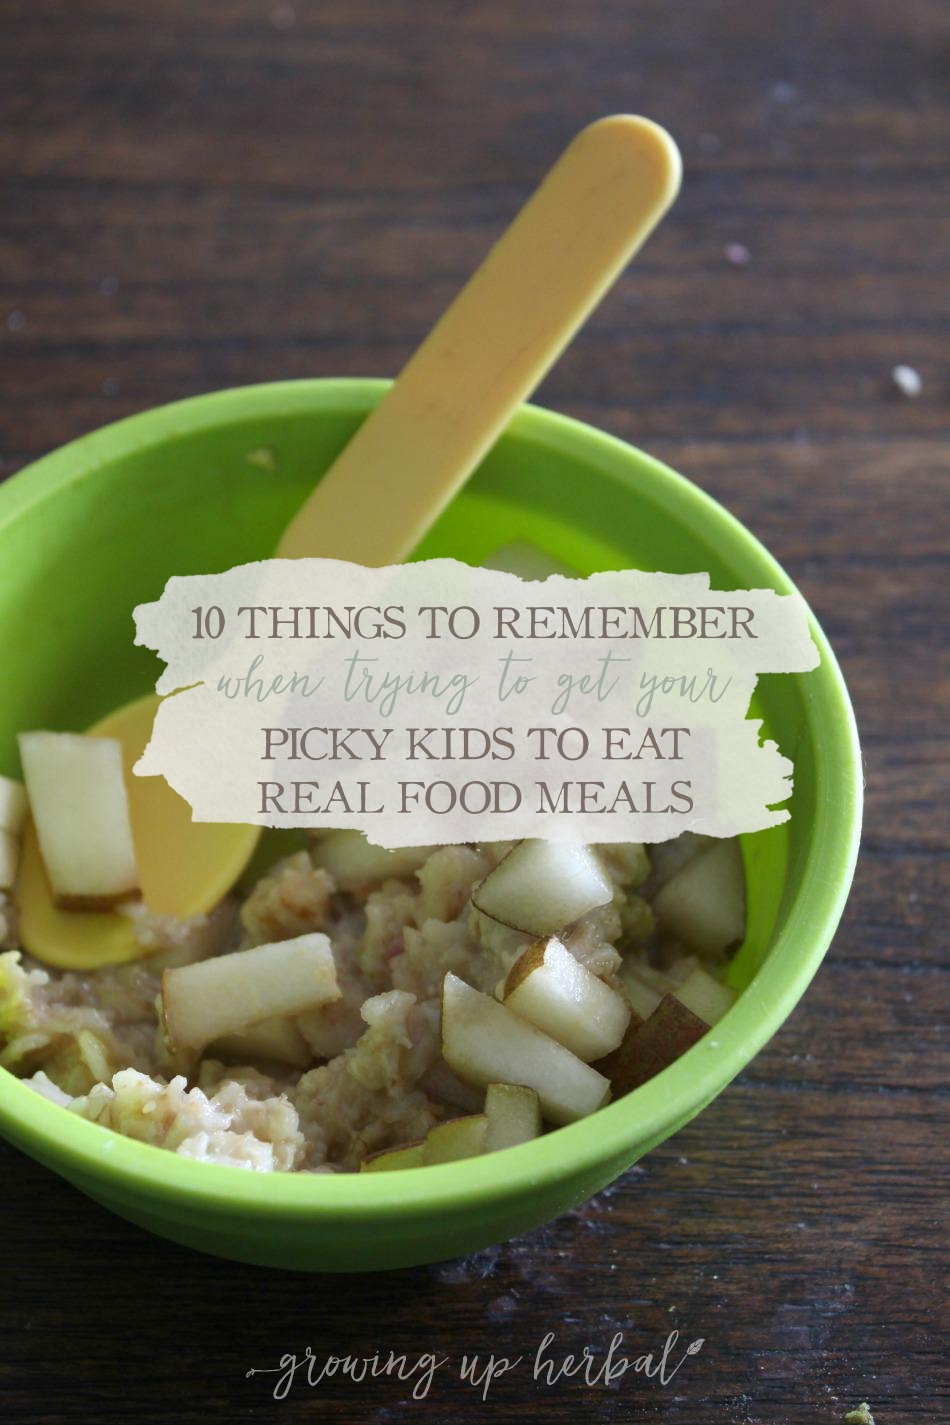 10 Things To Remember When Trying To Get Your Picky Kids To Eat Real Food Meals | Growing Up Herbal | 10 tips for dealing with picky kids over eating healthy foods!